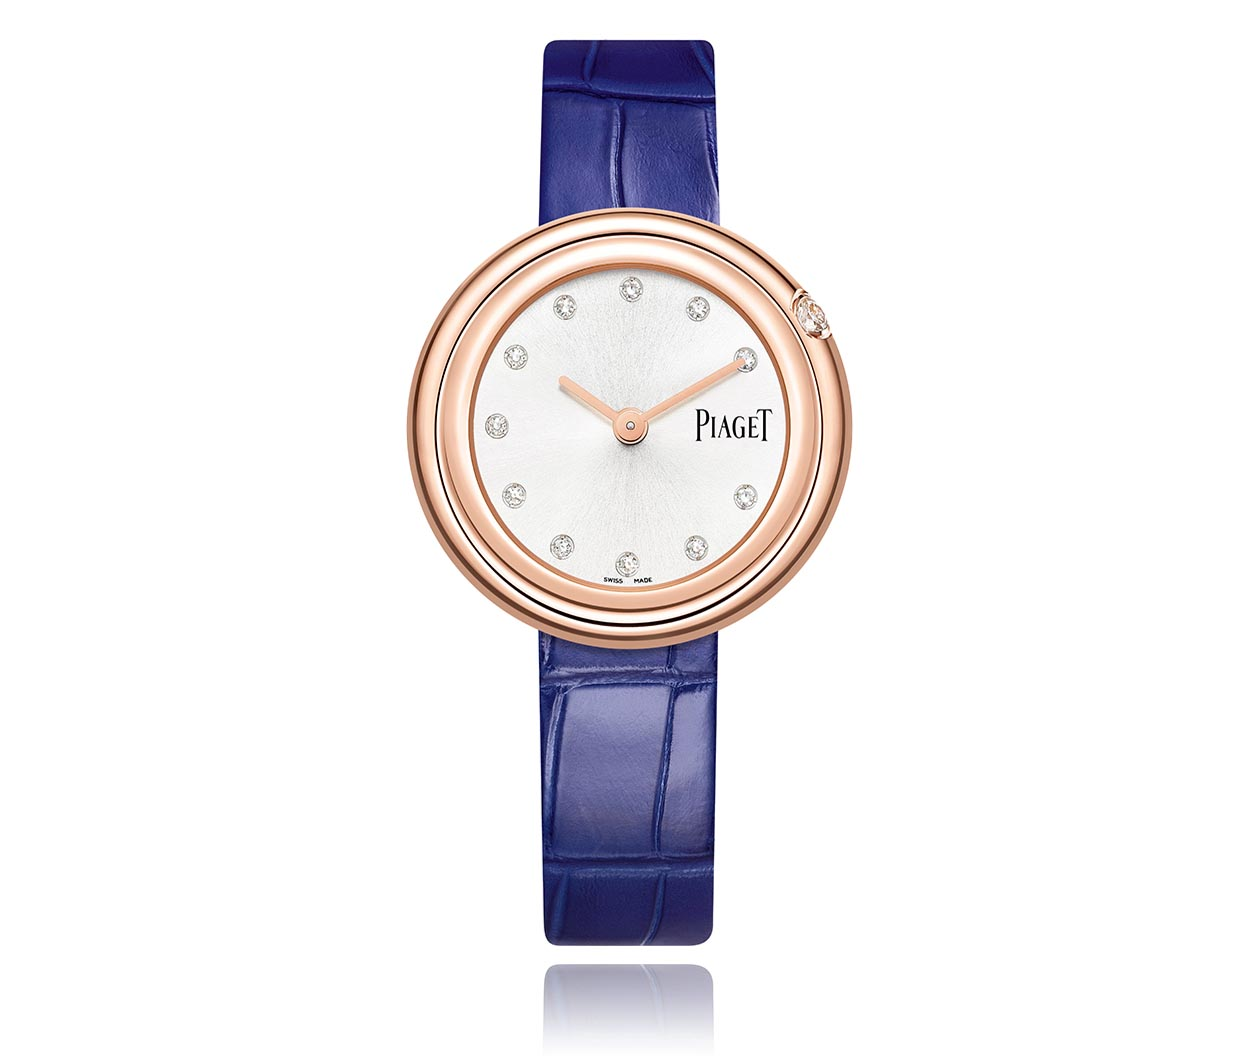 Piaget Possession watch G0A43091 Carousel 1 FINAL